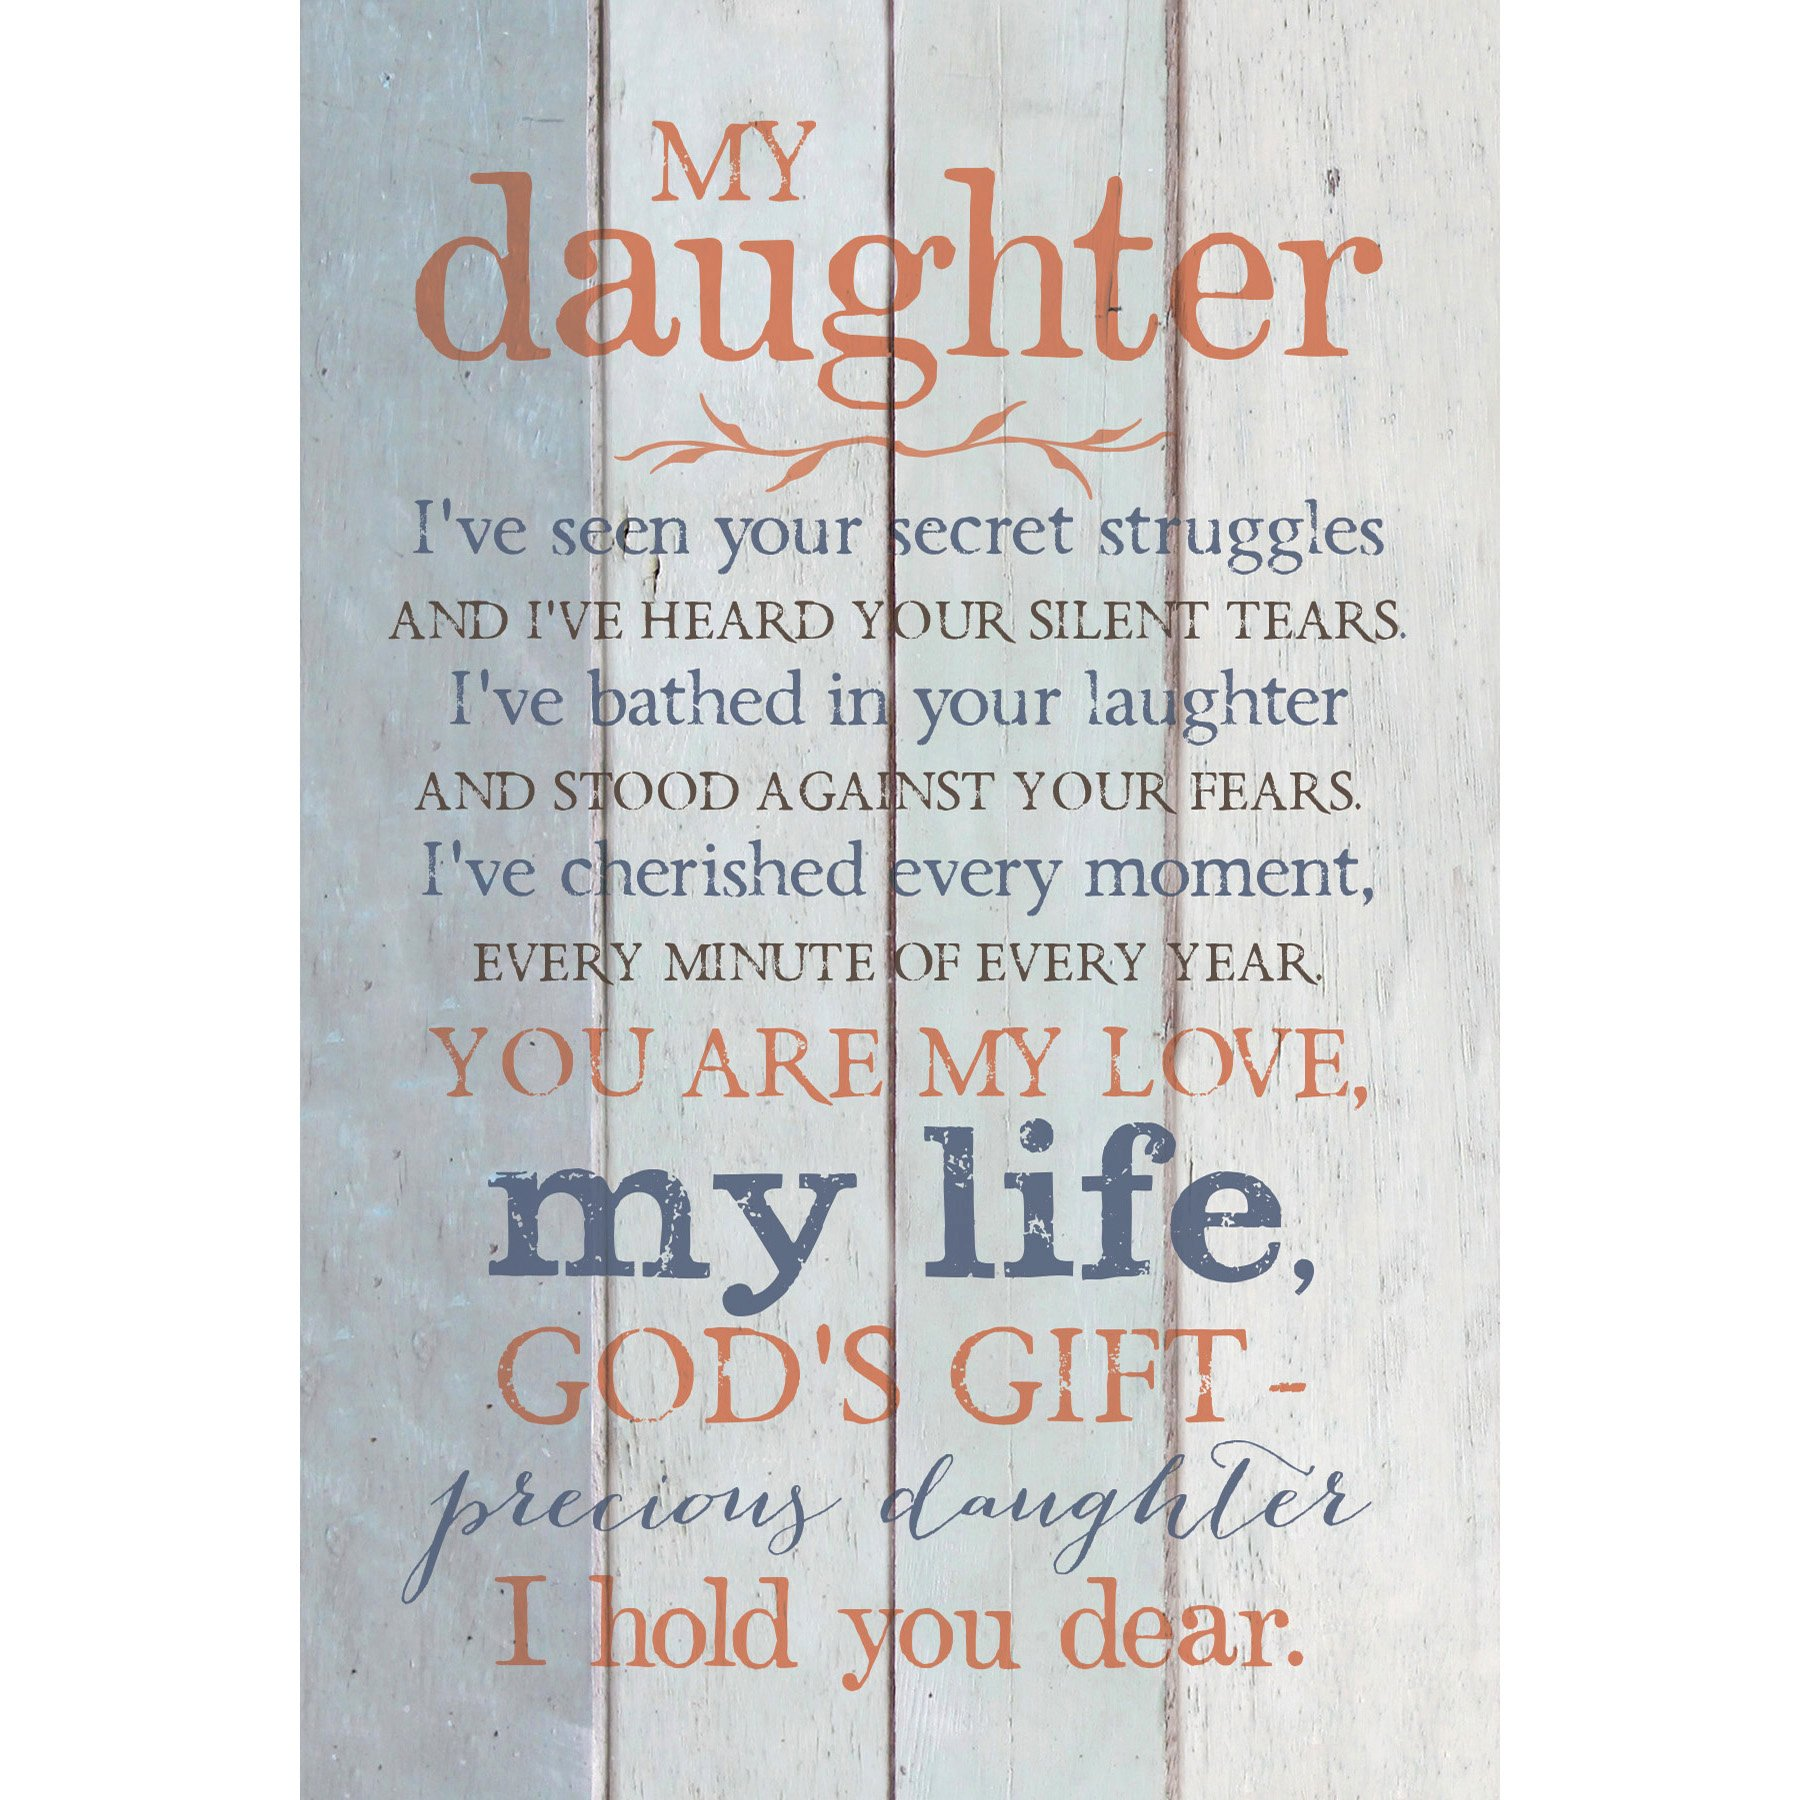 daughter wood plaque with inspiring quotes 6x9 classy vertical frame wall tabletop decoration